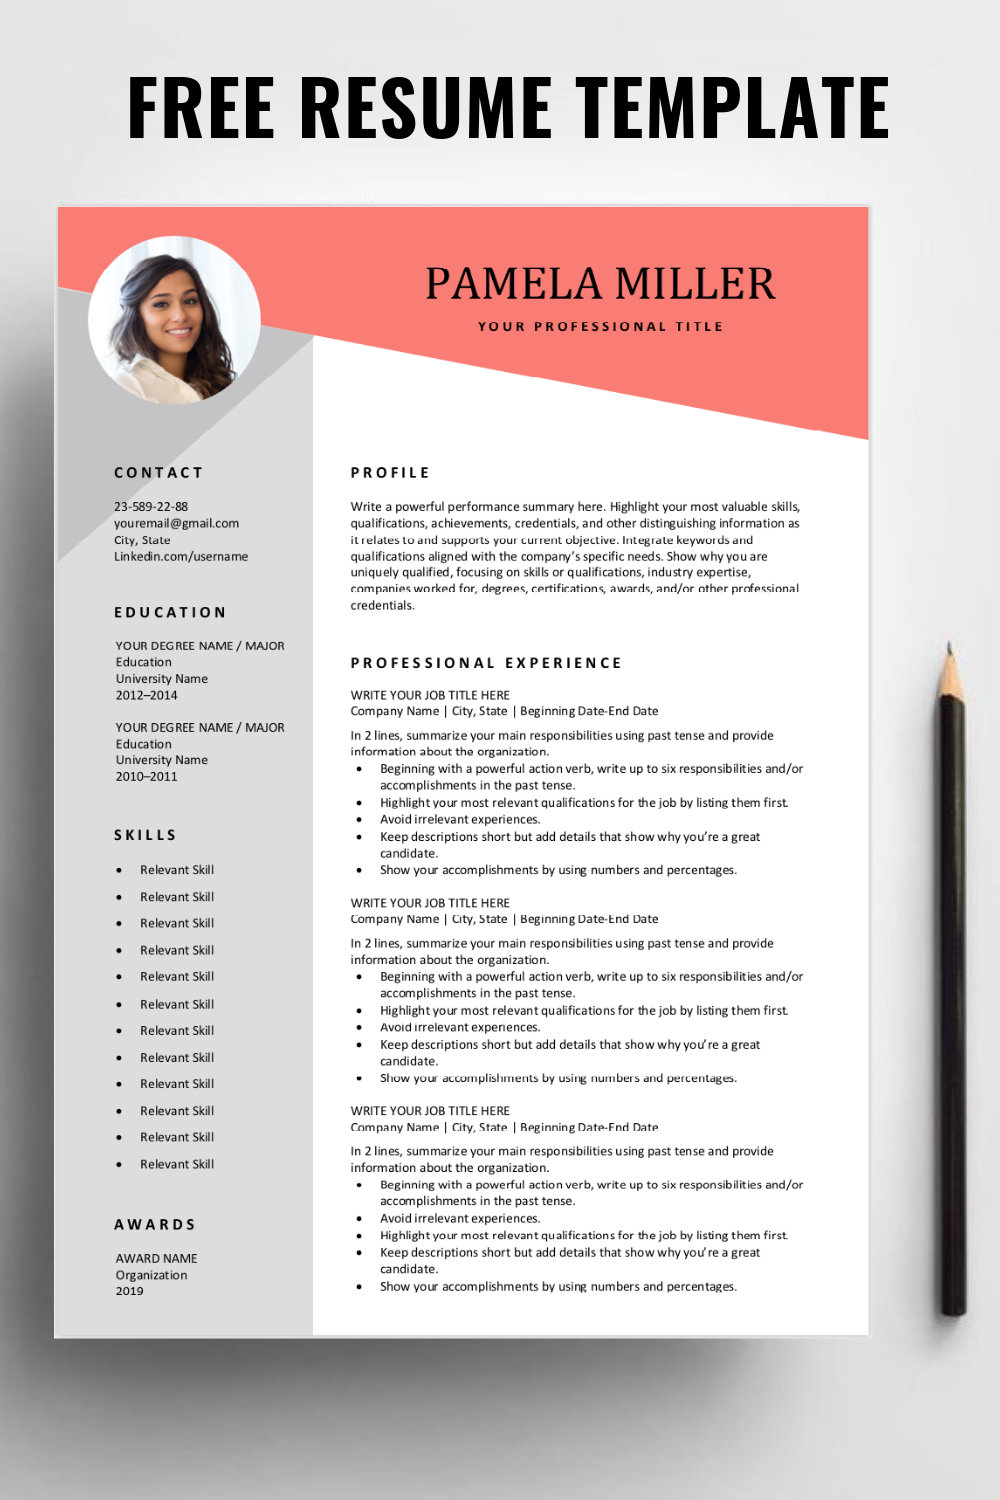 Modern Resume Template Download for Free in 2020